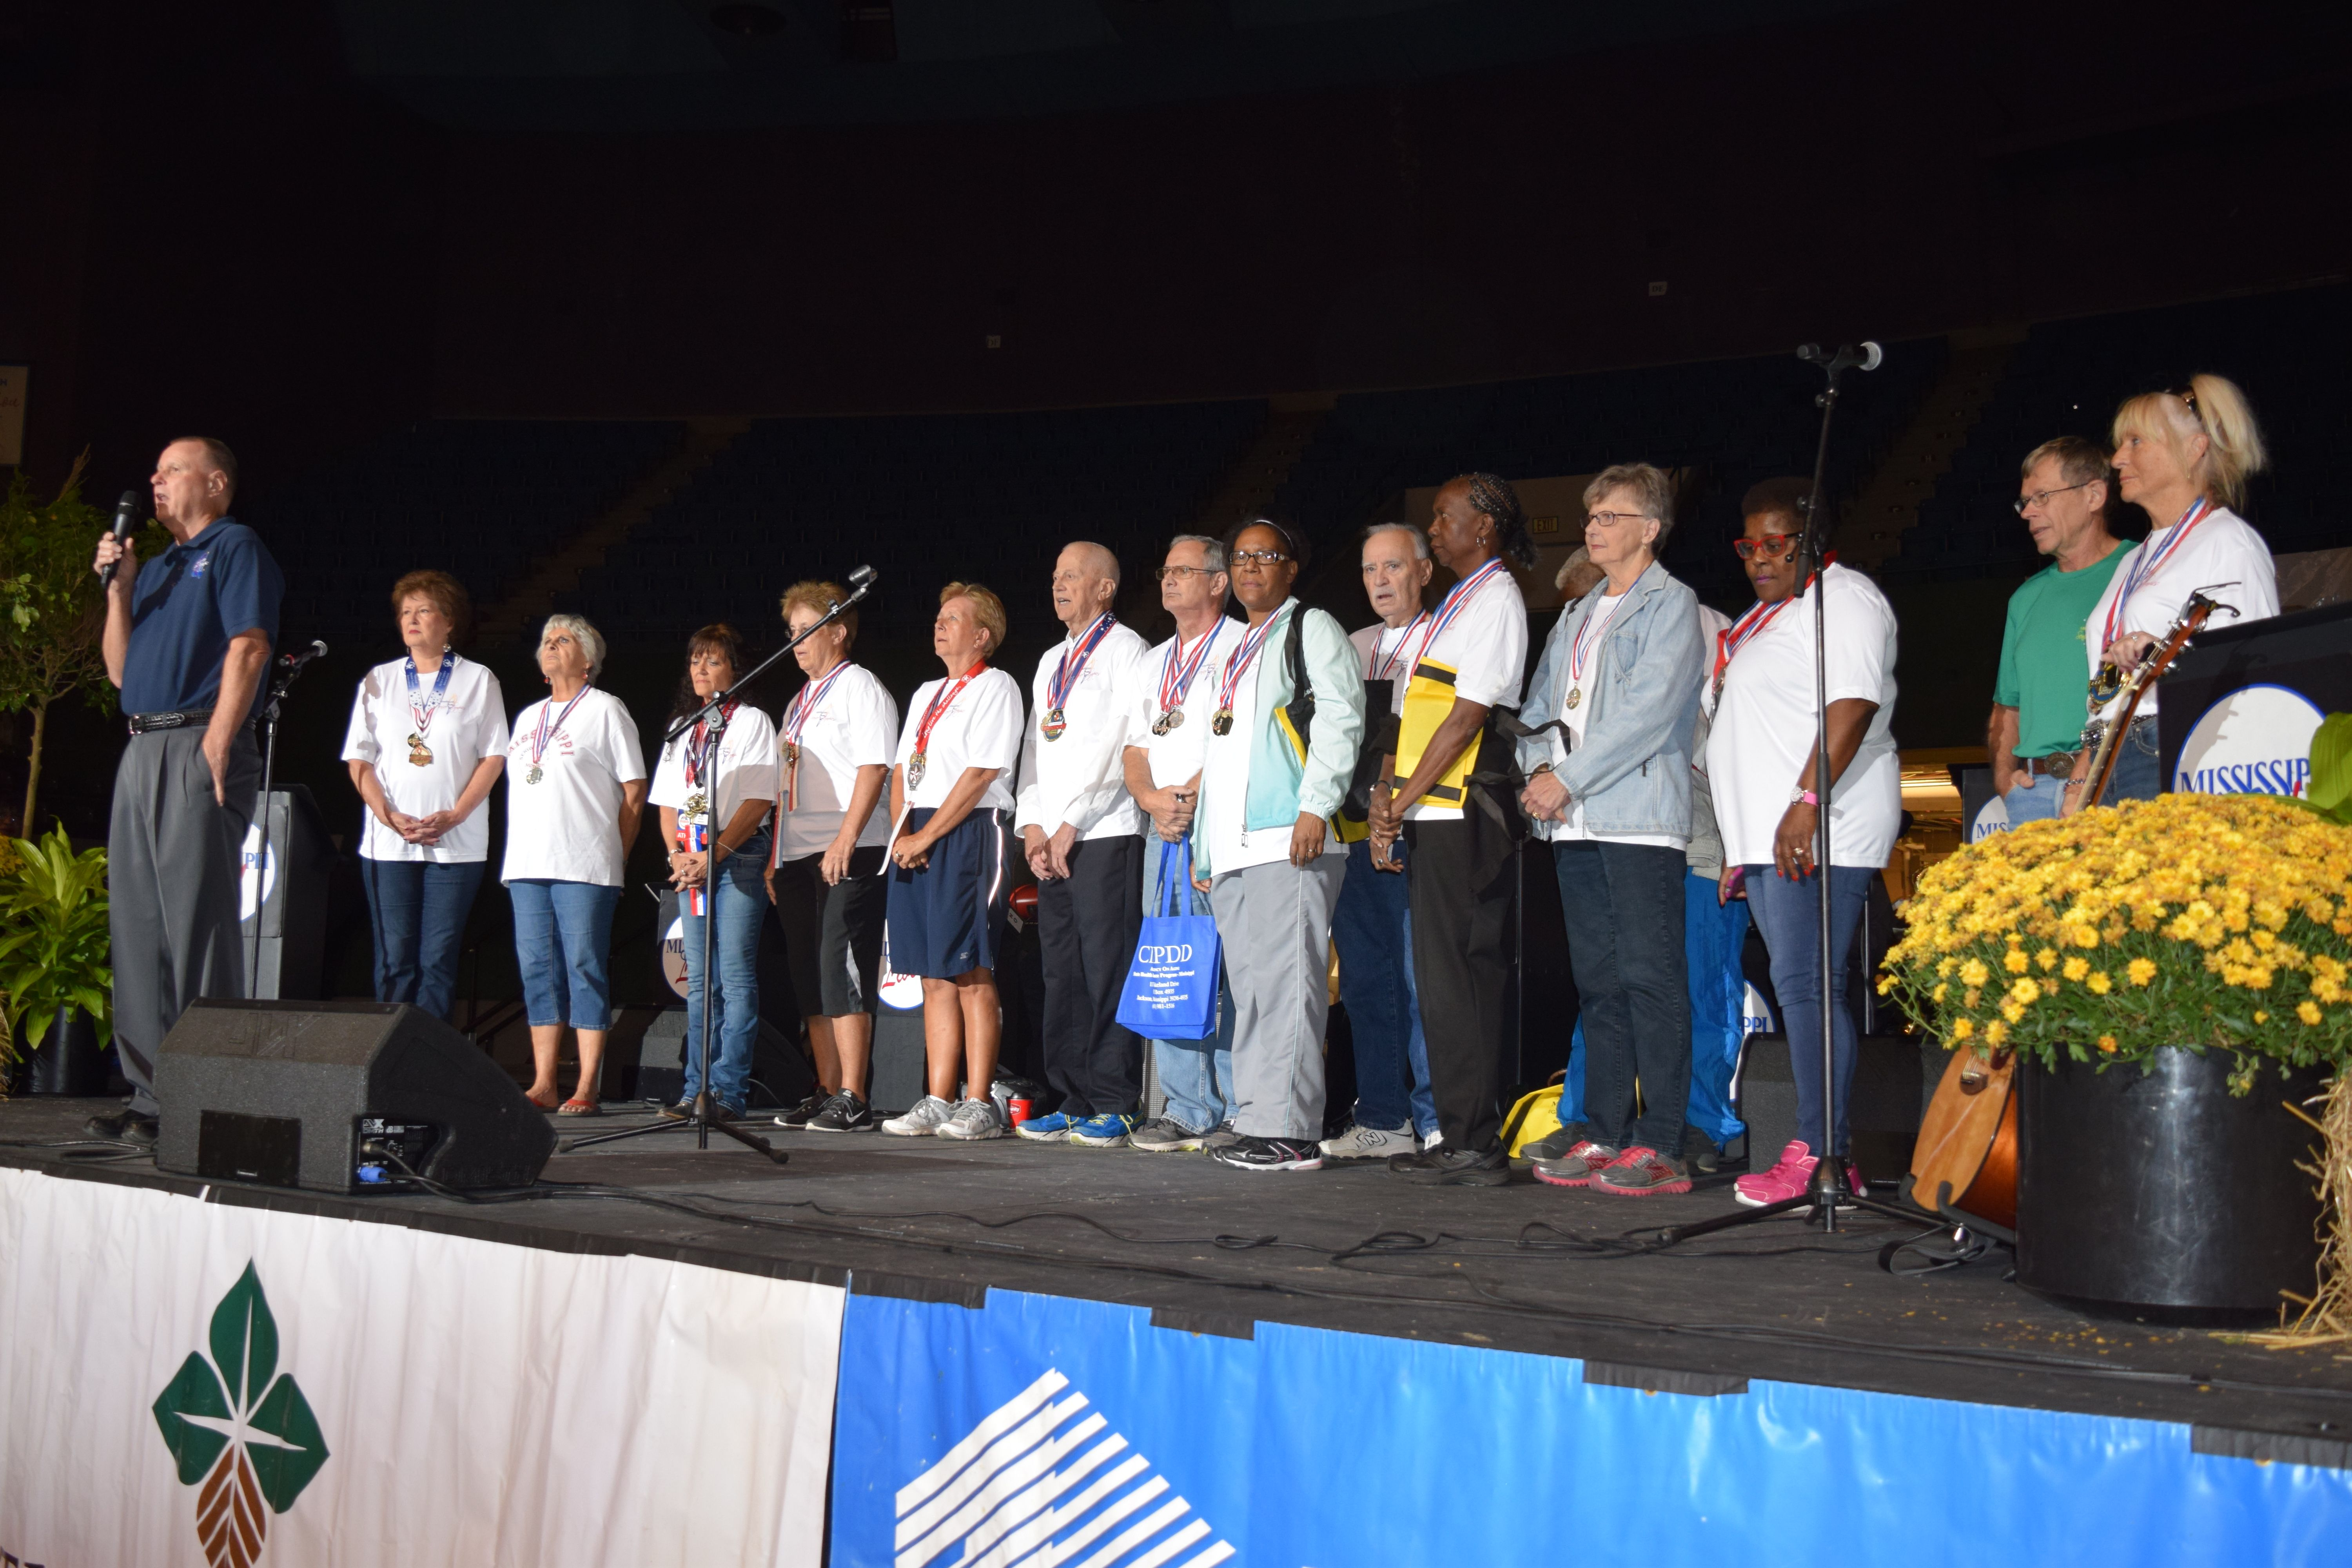 Mississippi Senior Olympians recognized at MS State Fair Senior Day